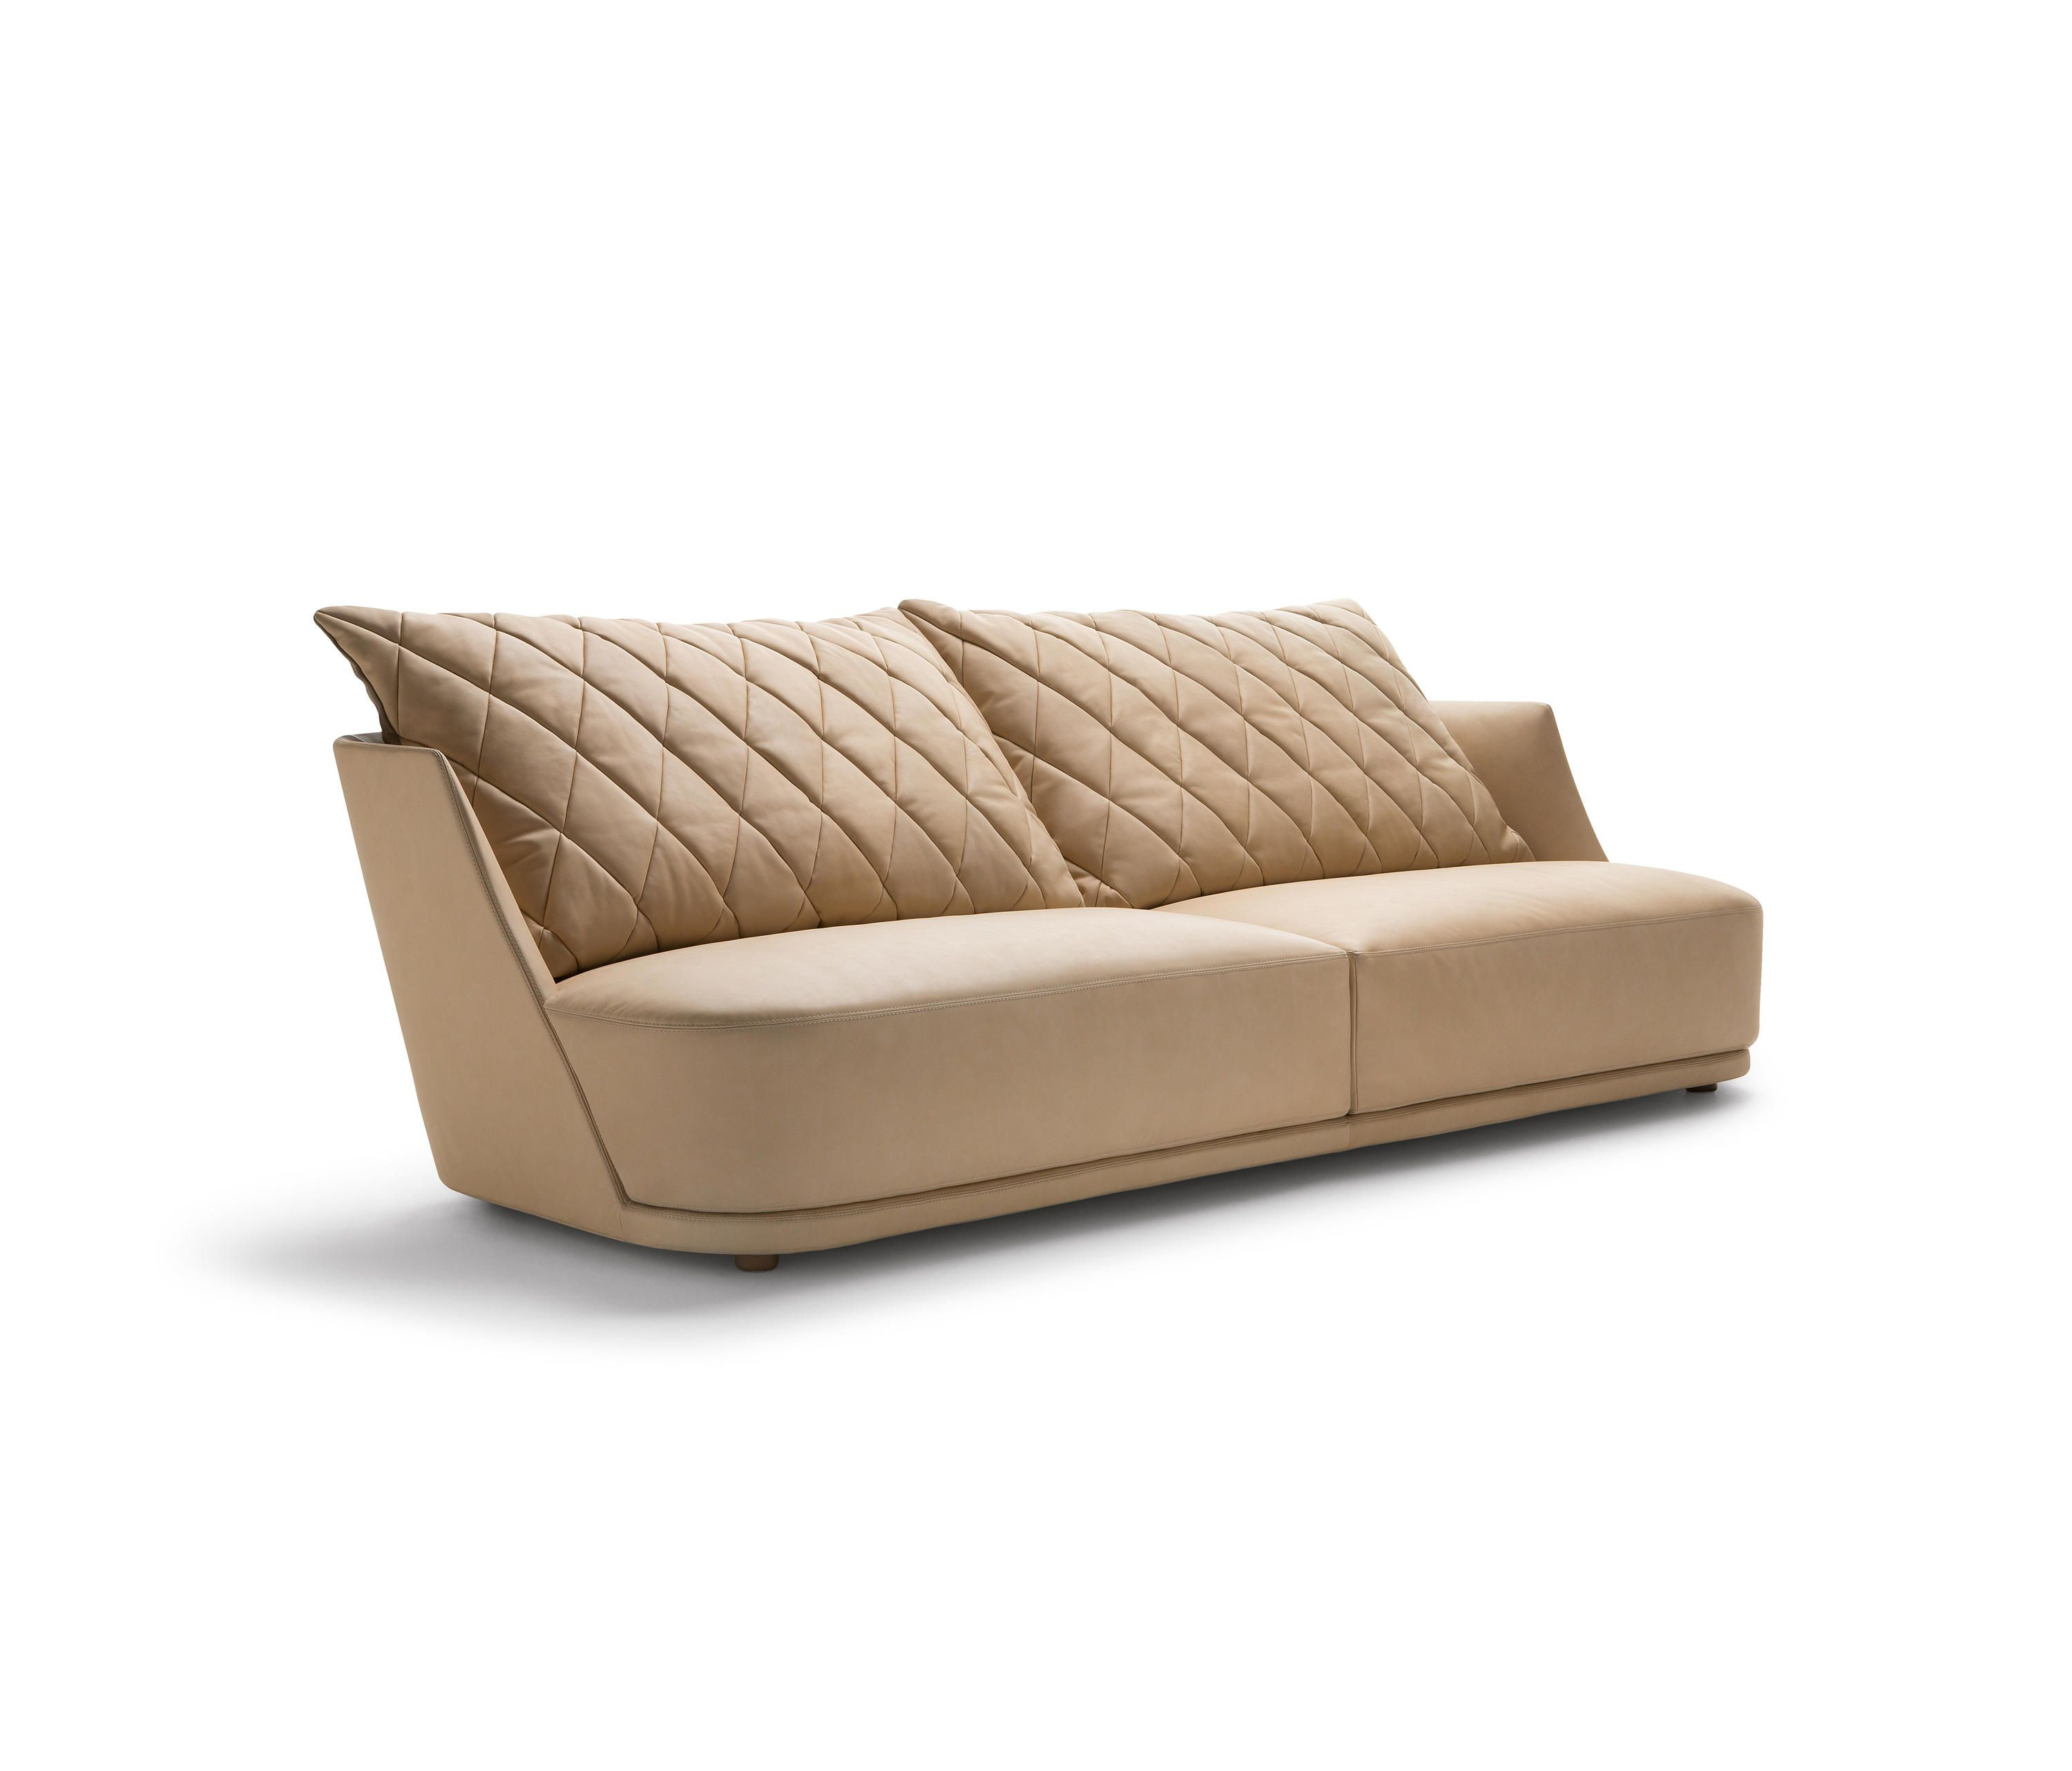 Grace – Sofasalberta Pacific Furniture | Architonic | Dw单位沙发 In Grace Sofa Chairs (View 7 of 25)